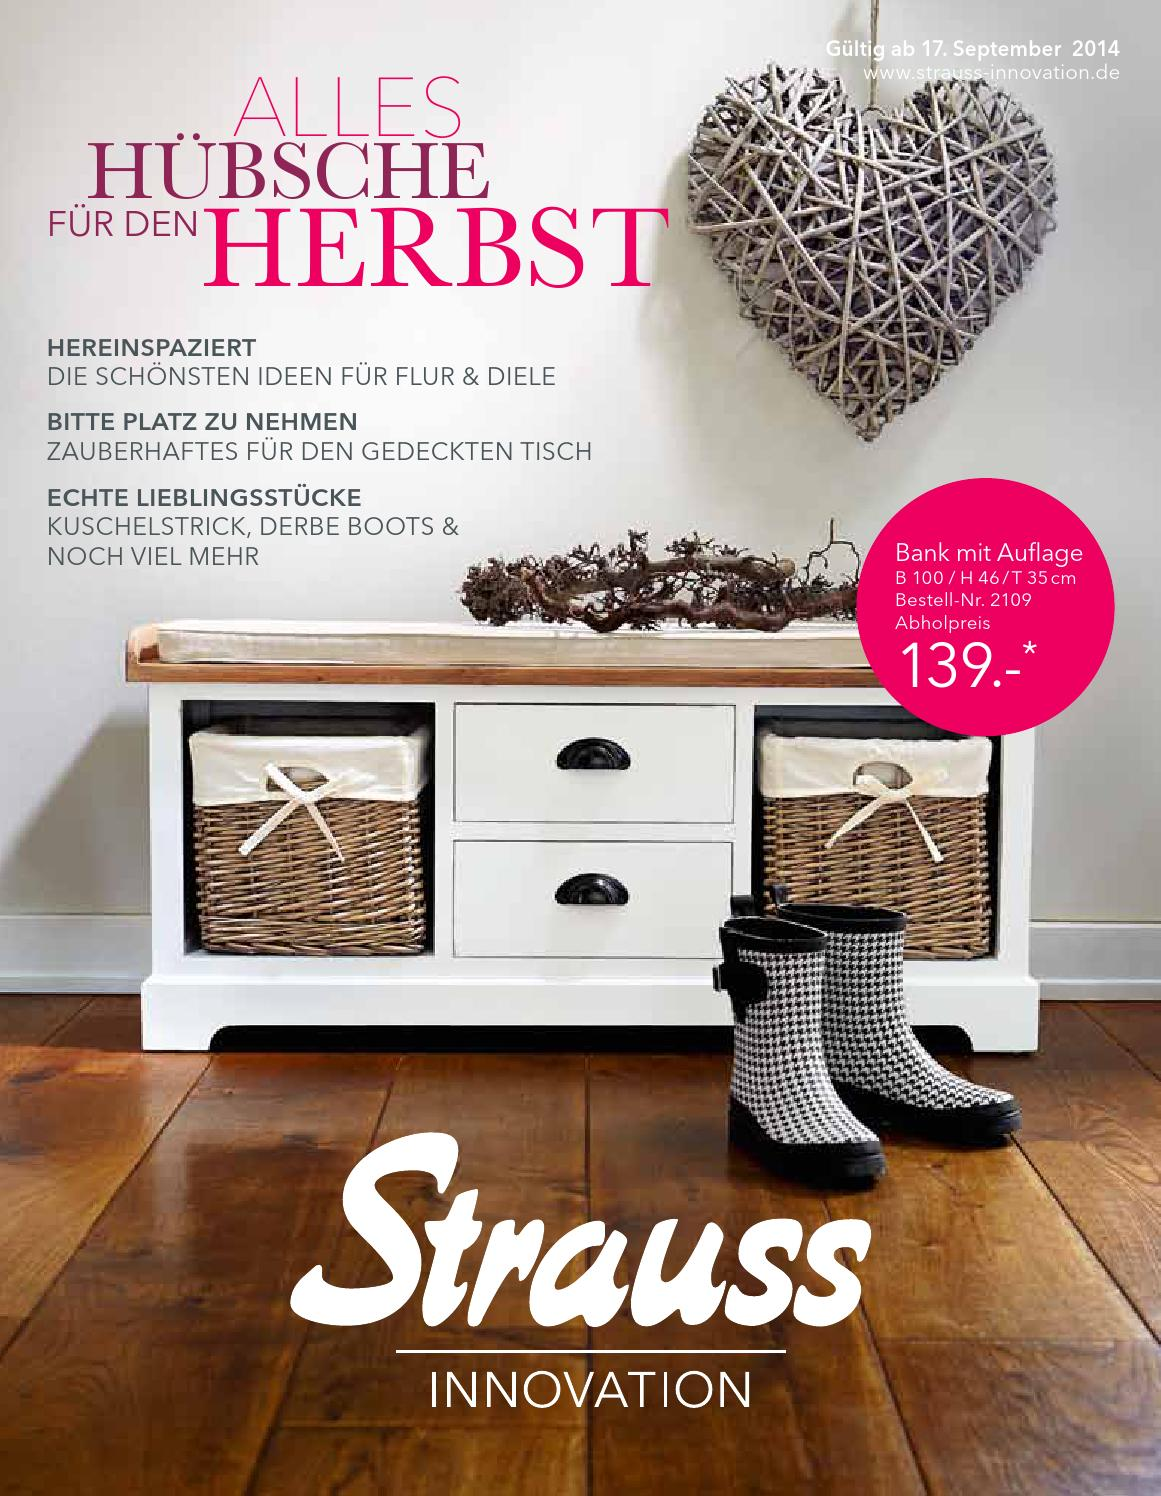 alles h bsche f r den herbst by strauss innovation gmbh. Black Bedroom Furniture Sets. Home Design Ideas